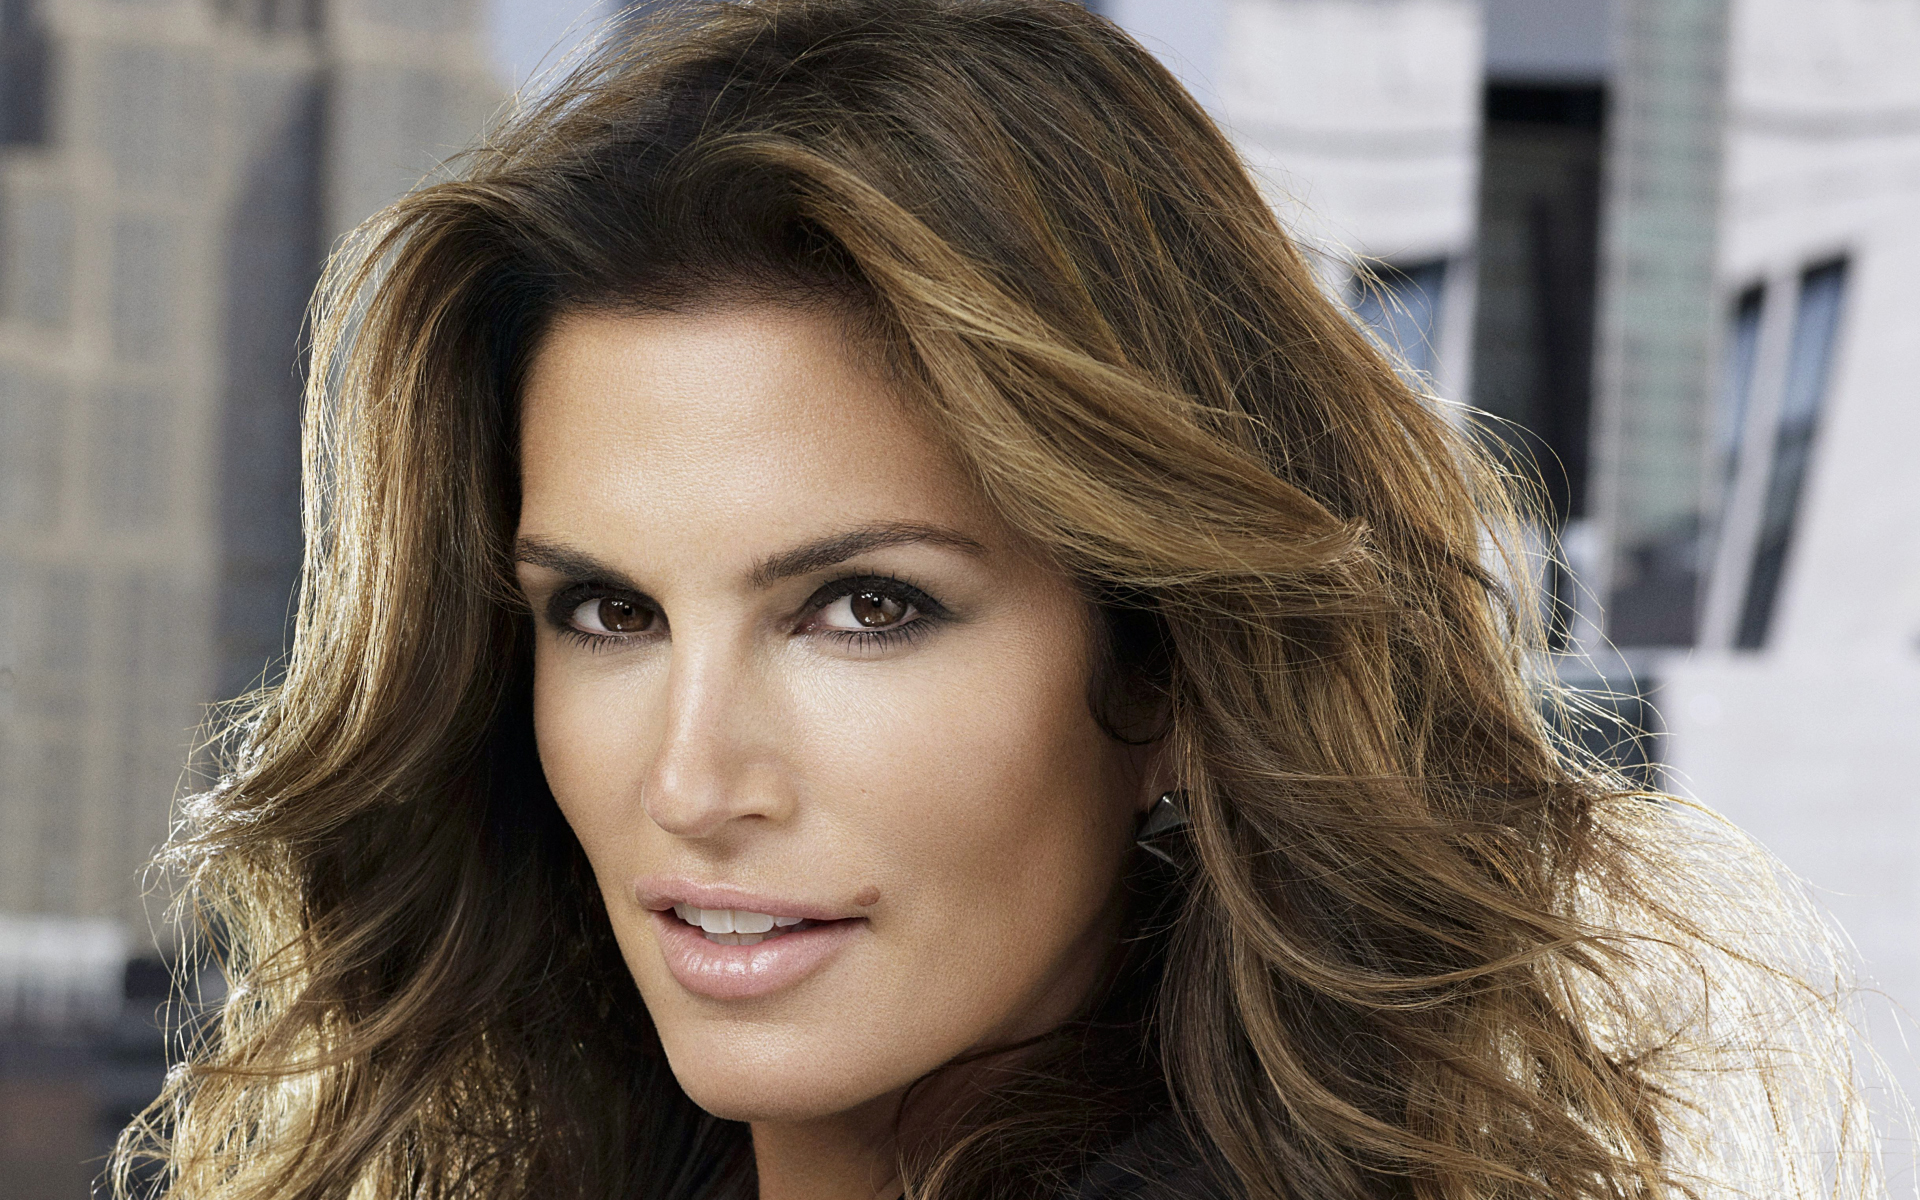 Cindy crawford wallpapers images photos pictures backgrounds for The crawford